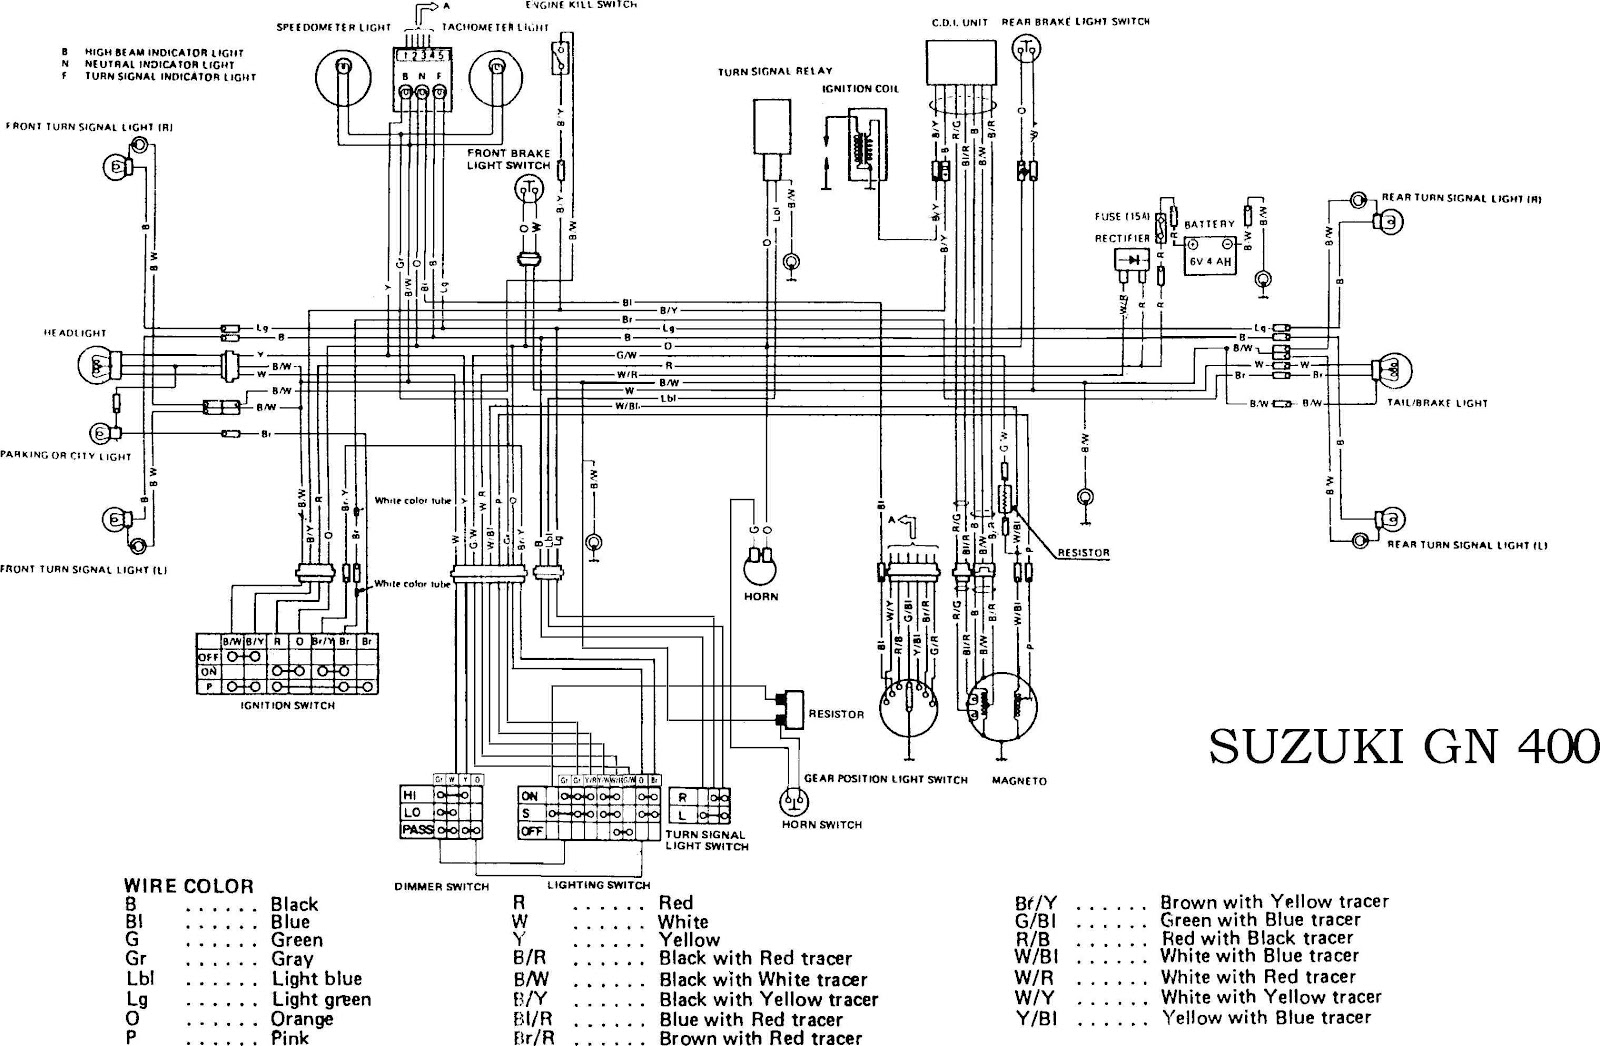 Aswc 1 Wiring Diagram also Suzuki Drz 400 Wiring Diagram Wiring Diagrams also Nissan Dvd Wiring Harness furthermore Sv650 Fuse Box additionally 1979 Chevy Vacuum Diagram. on suzuki sx4 radio harness wiring diagram